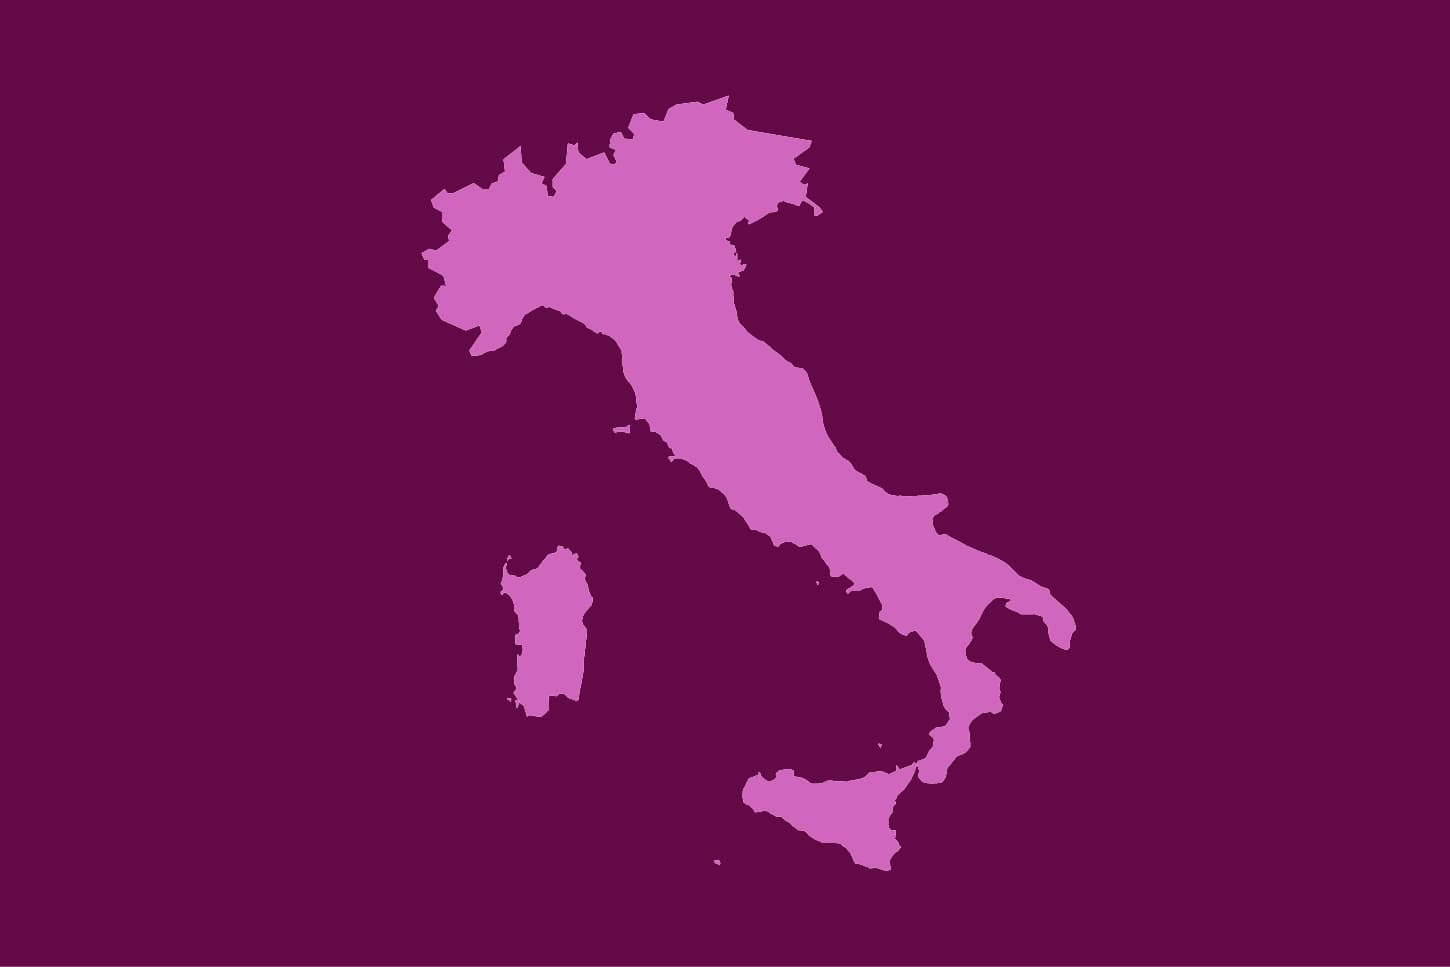 Purple Map of Italy